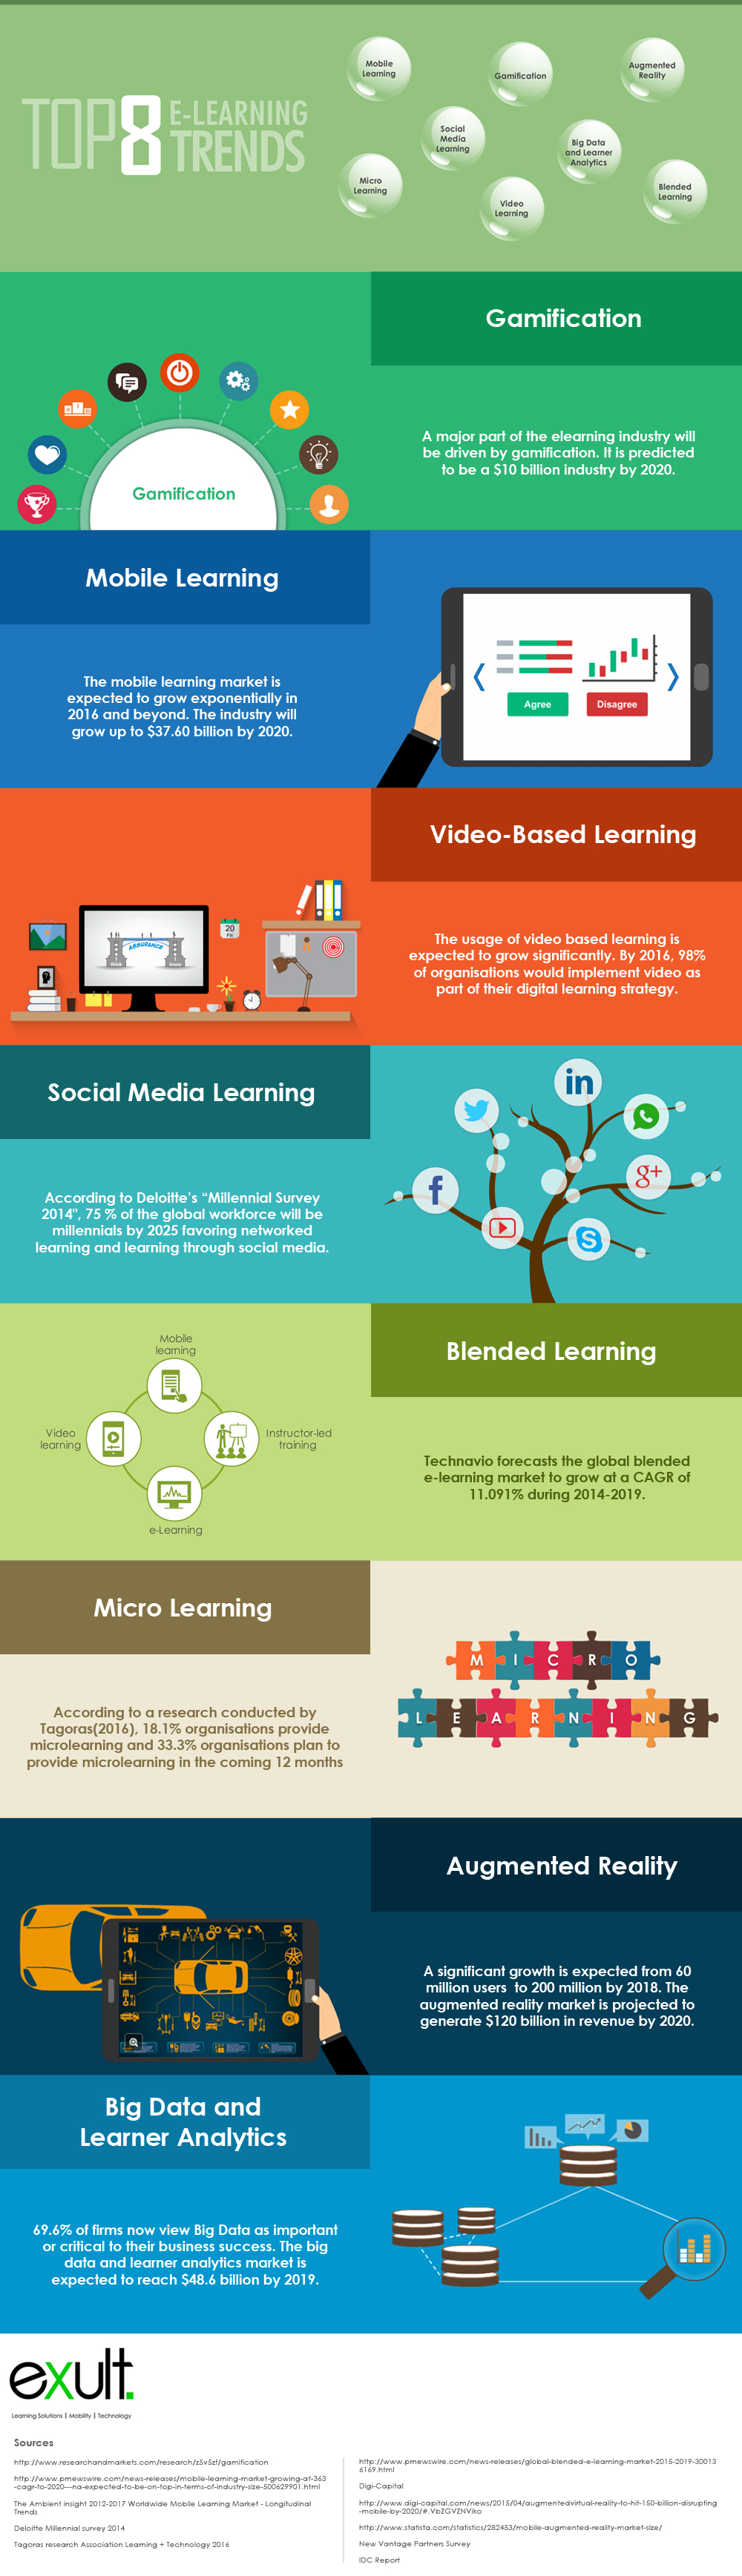 top 8 e-learning trends in 2016